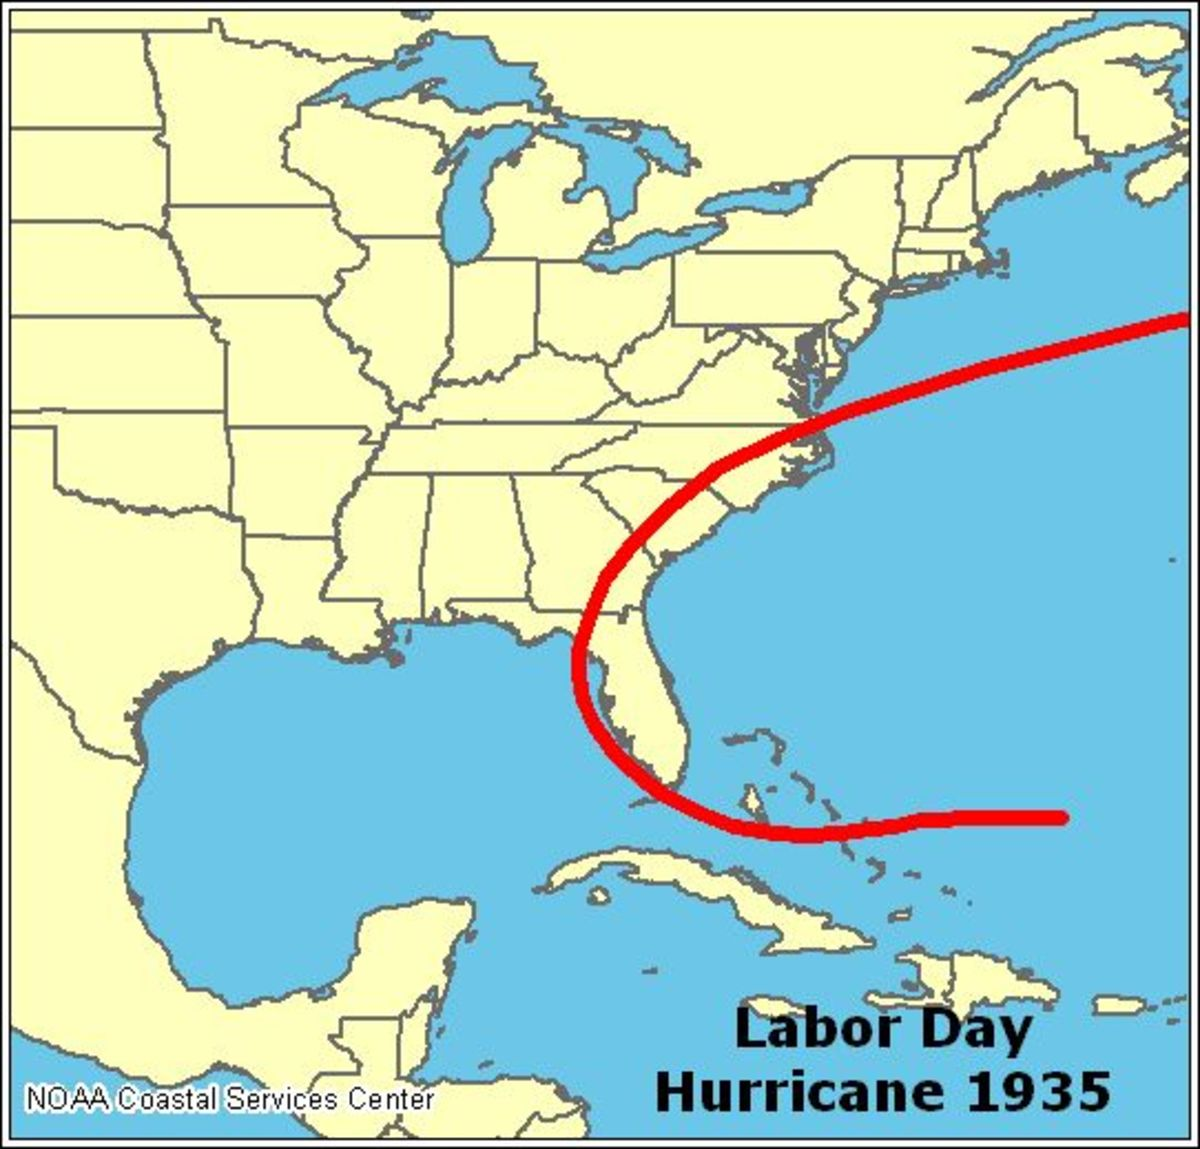 NOAA map showing path of the 1935 Labor Day Hurricane.